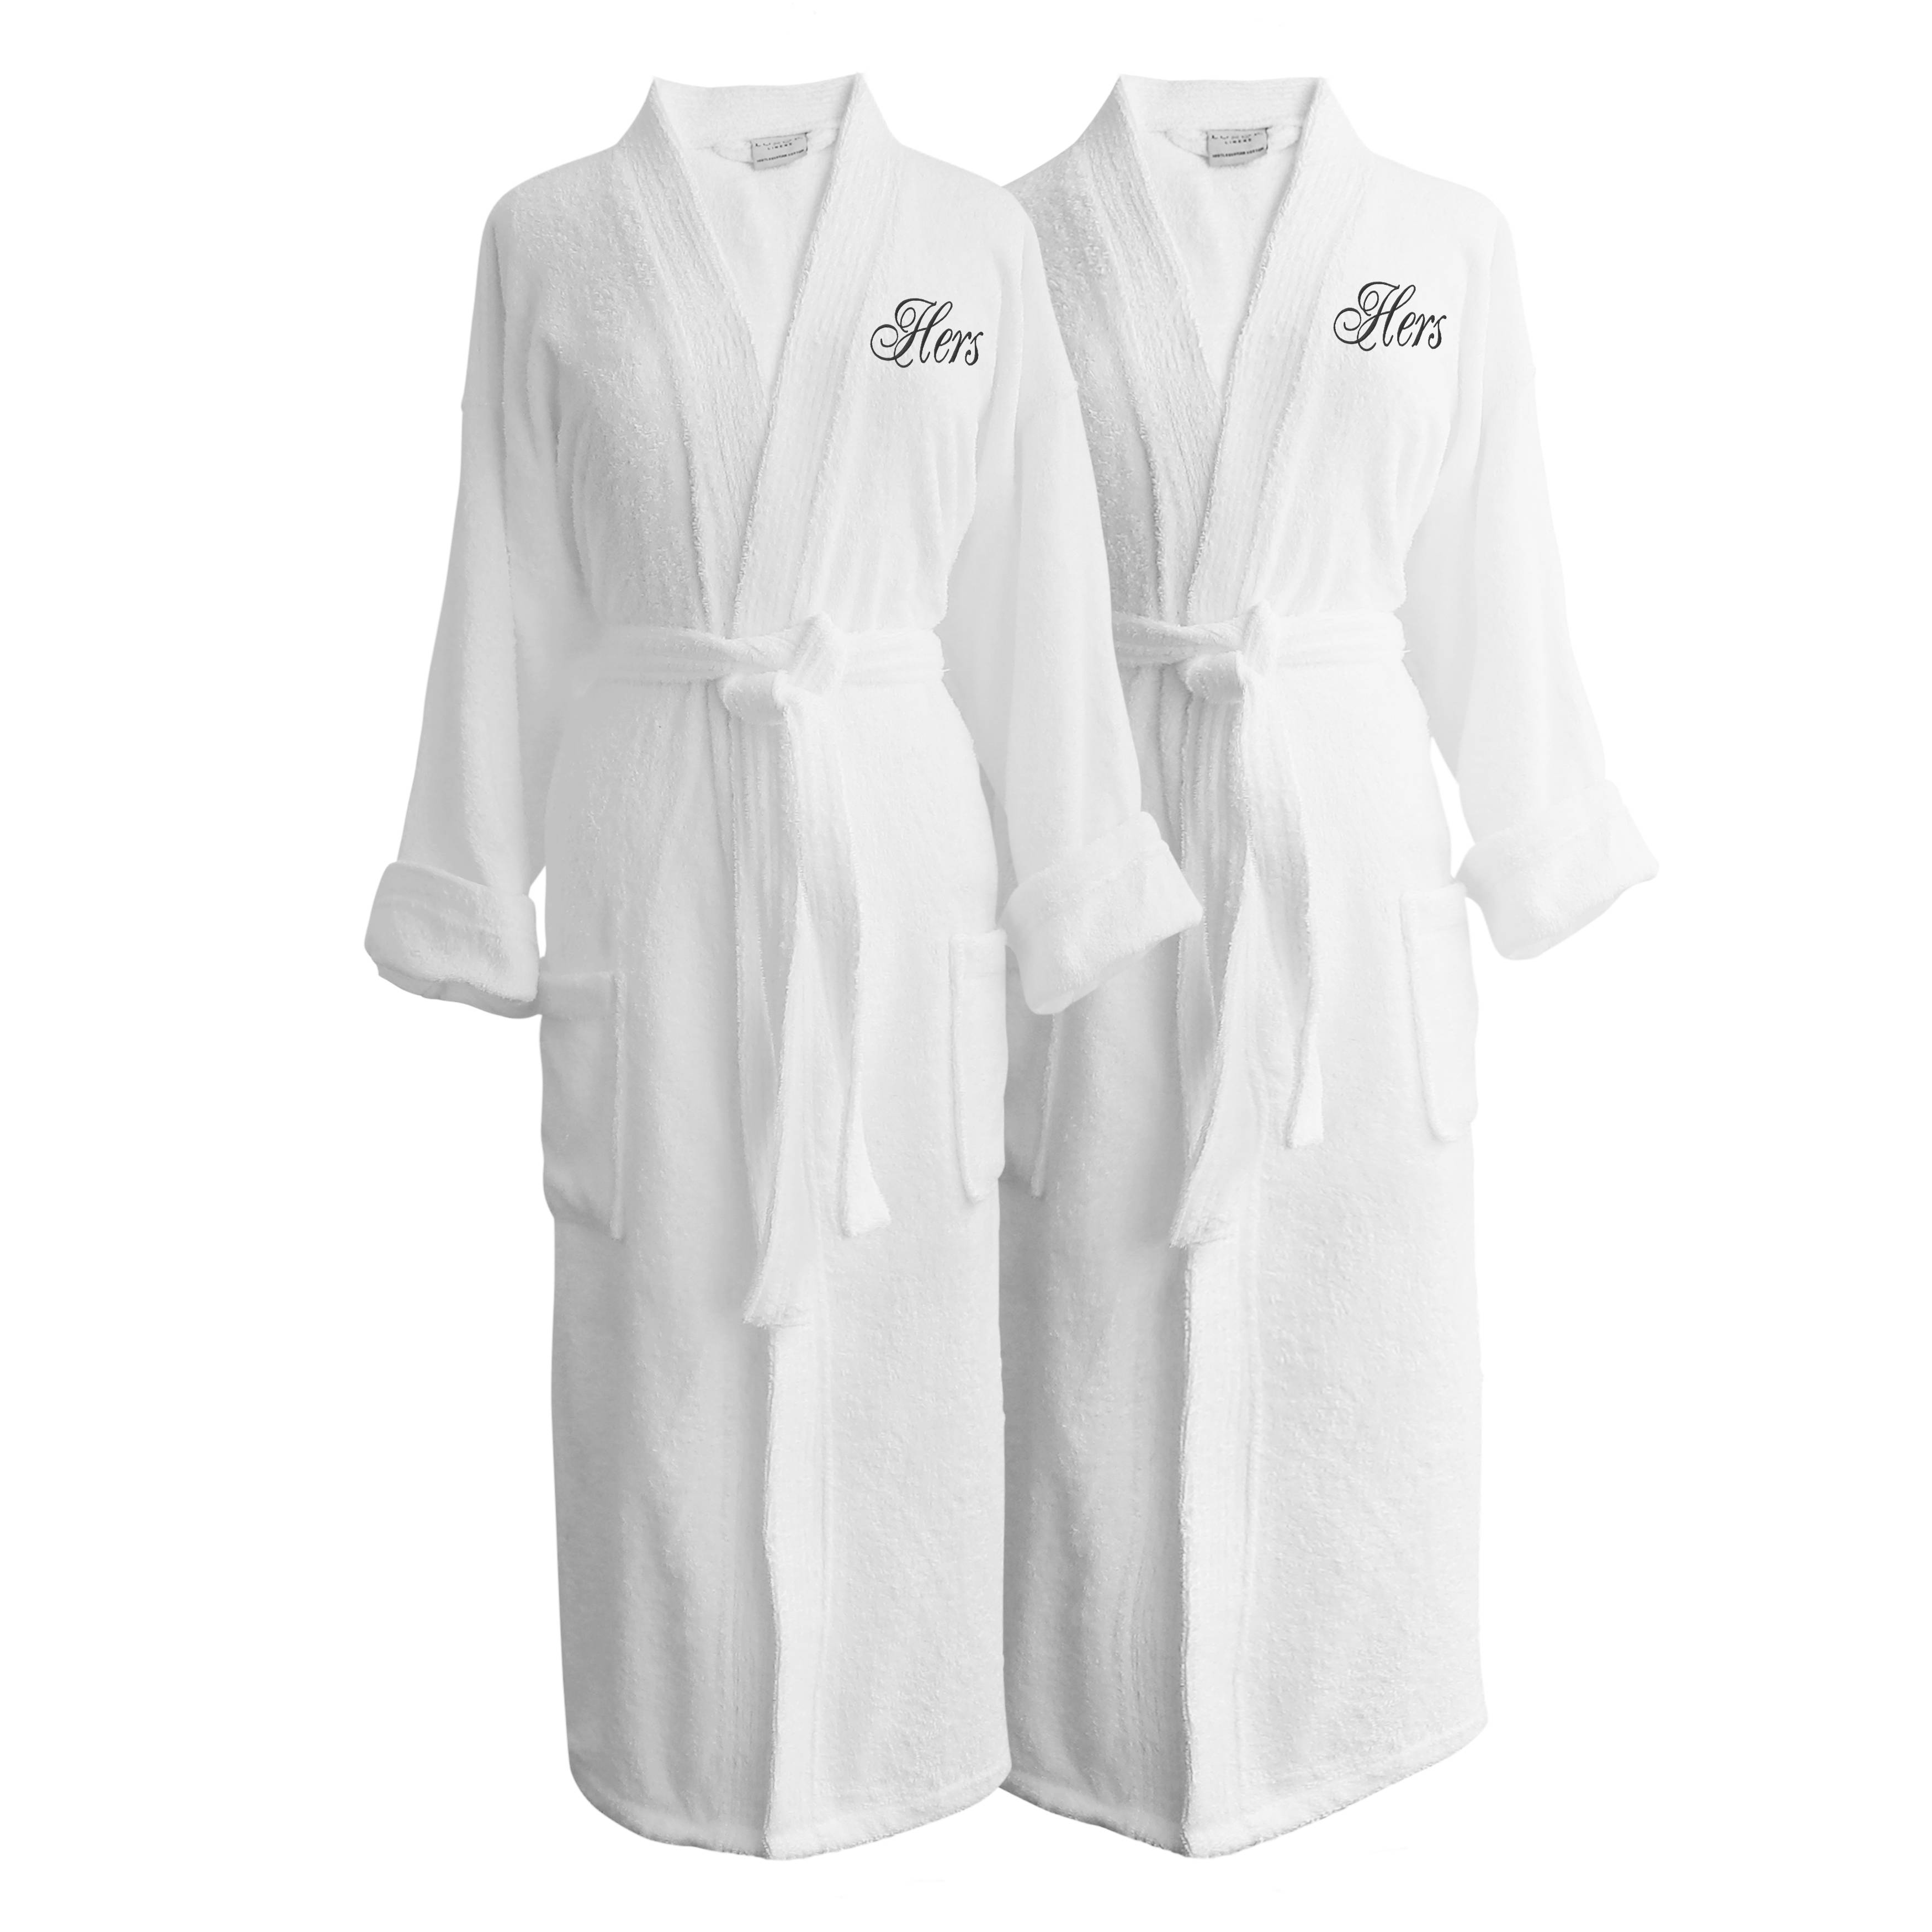 Luxor Linens Wyndham Egyptian Cotton Hers & Hers Terry Spa Robe Set